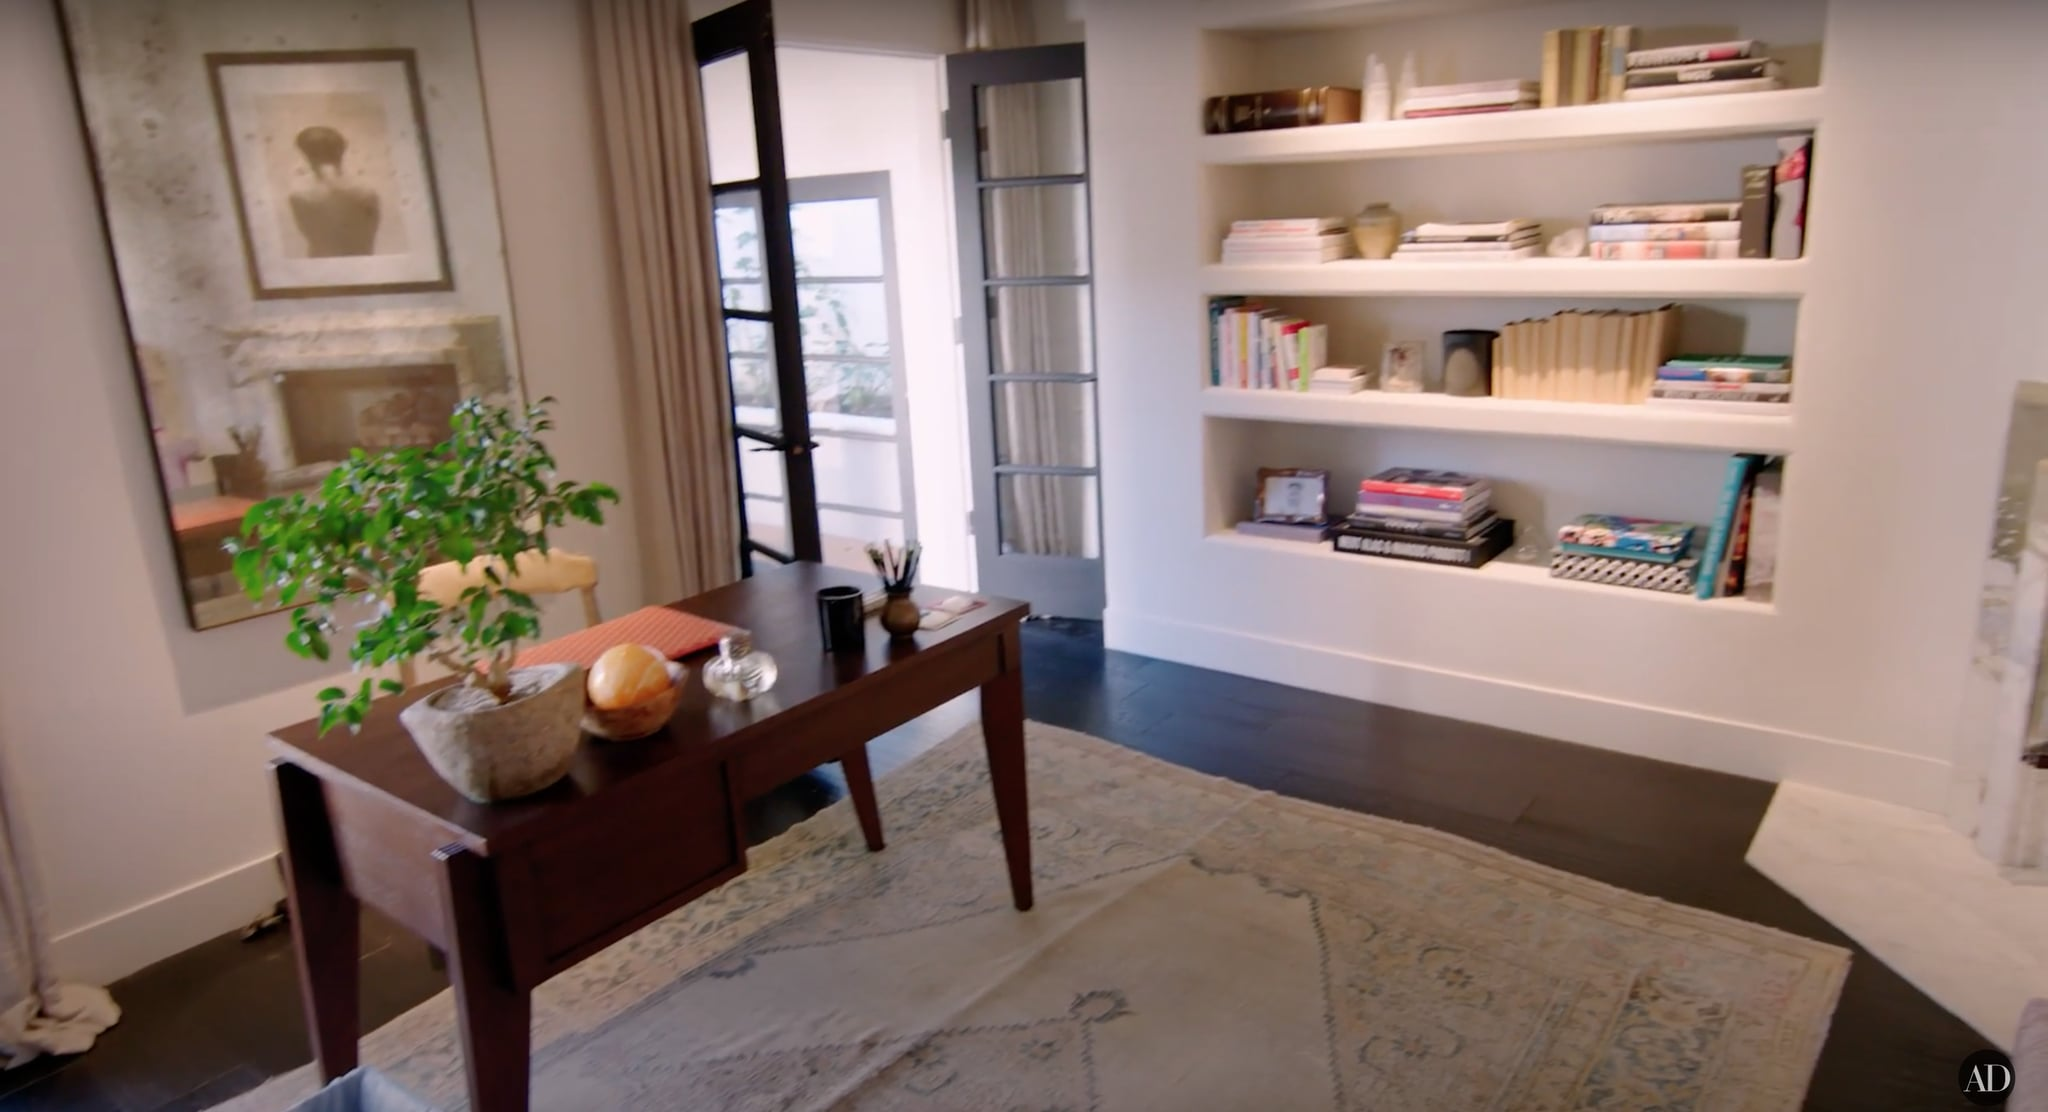 Kendall Jenner Shows Off Her LA Home in Architectural Digest | POPSUGAR Home